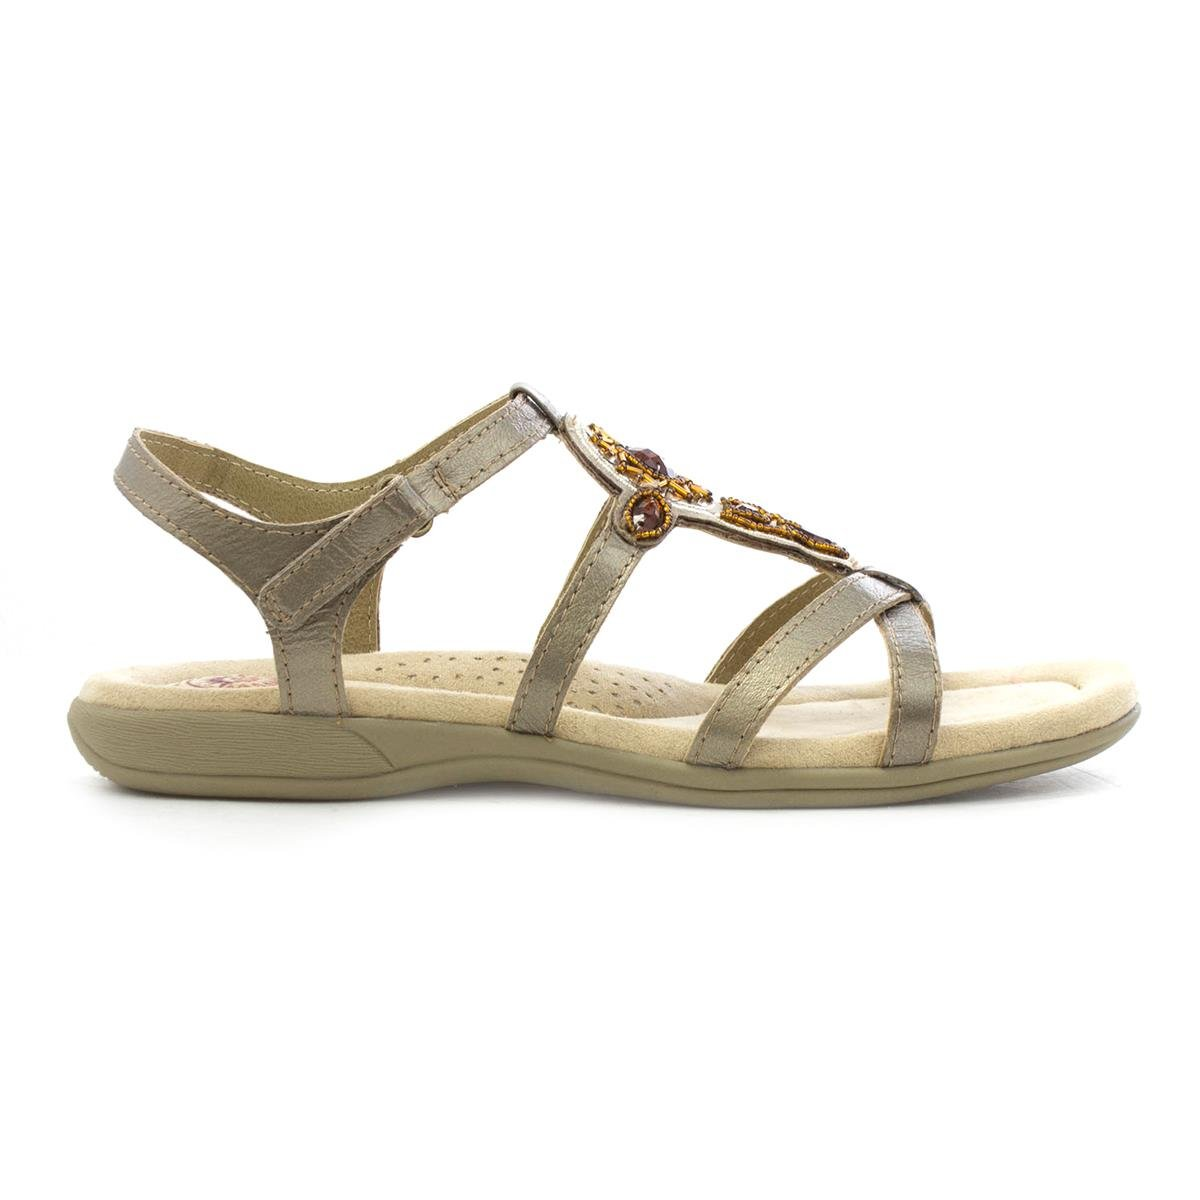 08a384fd6 Earth Spirit Womens Leather Platinum Casual Sandal  Amazon.co.uk  Shoes    Bags